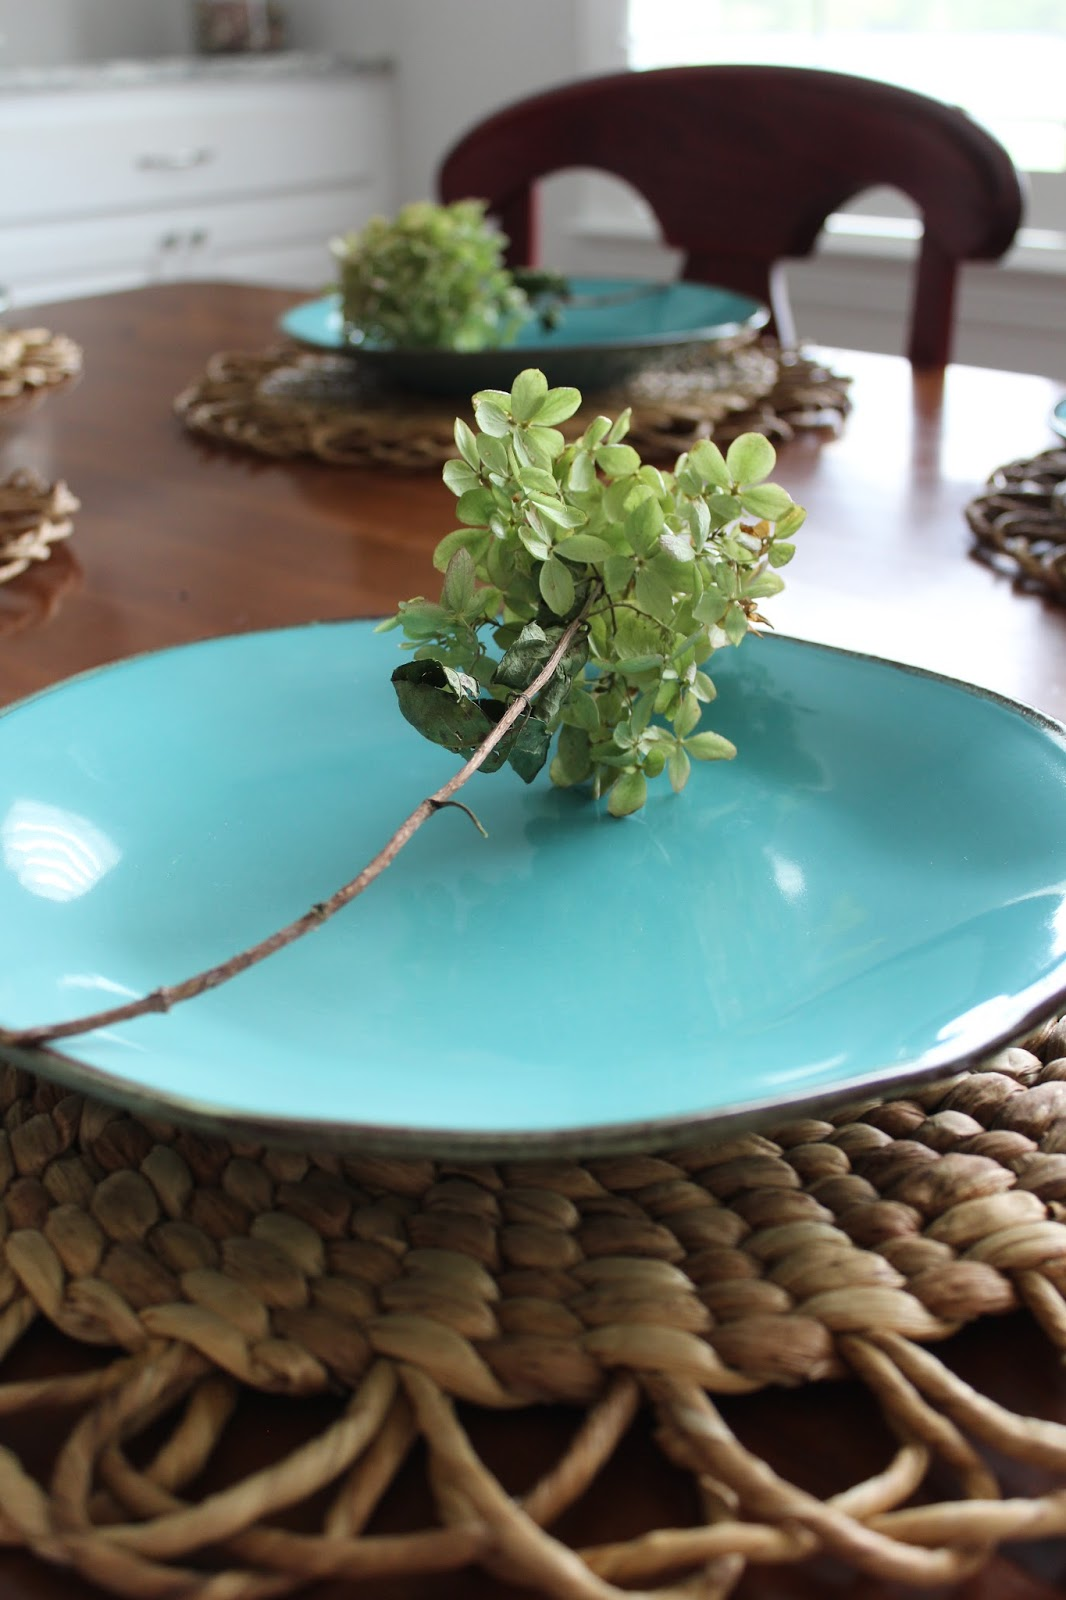 Fall decor ideas, quick and easy fall decor using what you have, fall tablescapes with hydrangeas